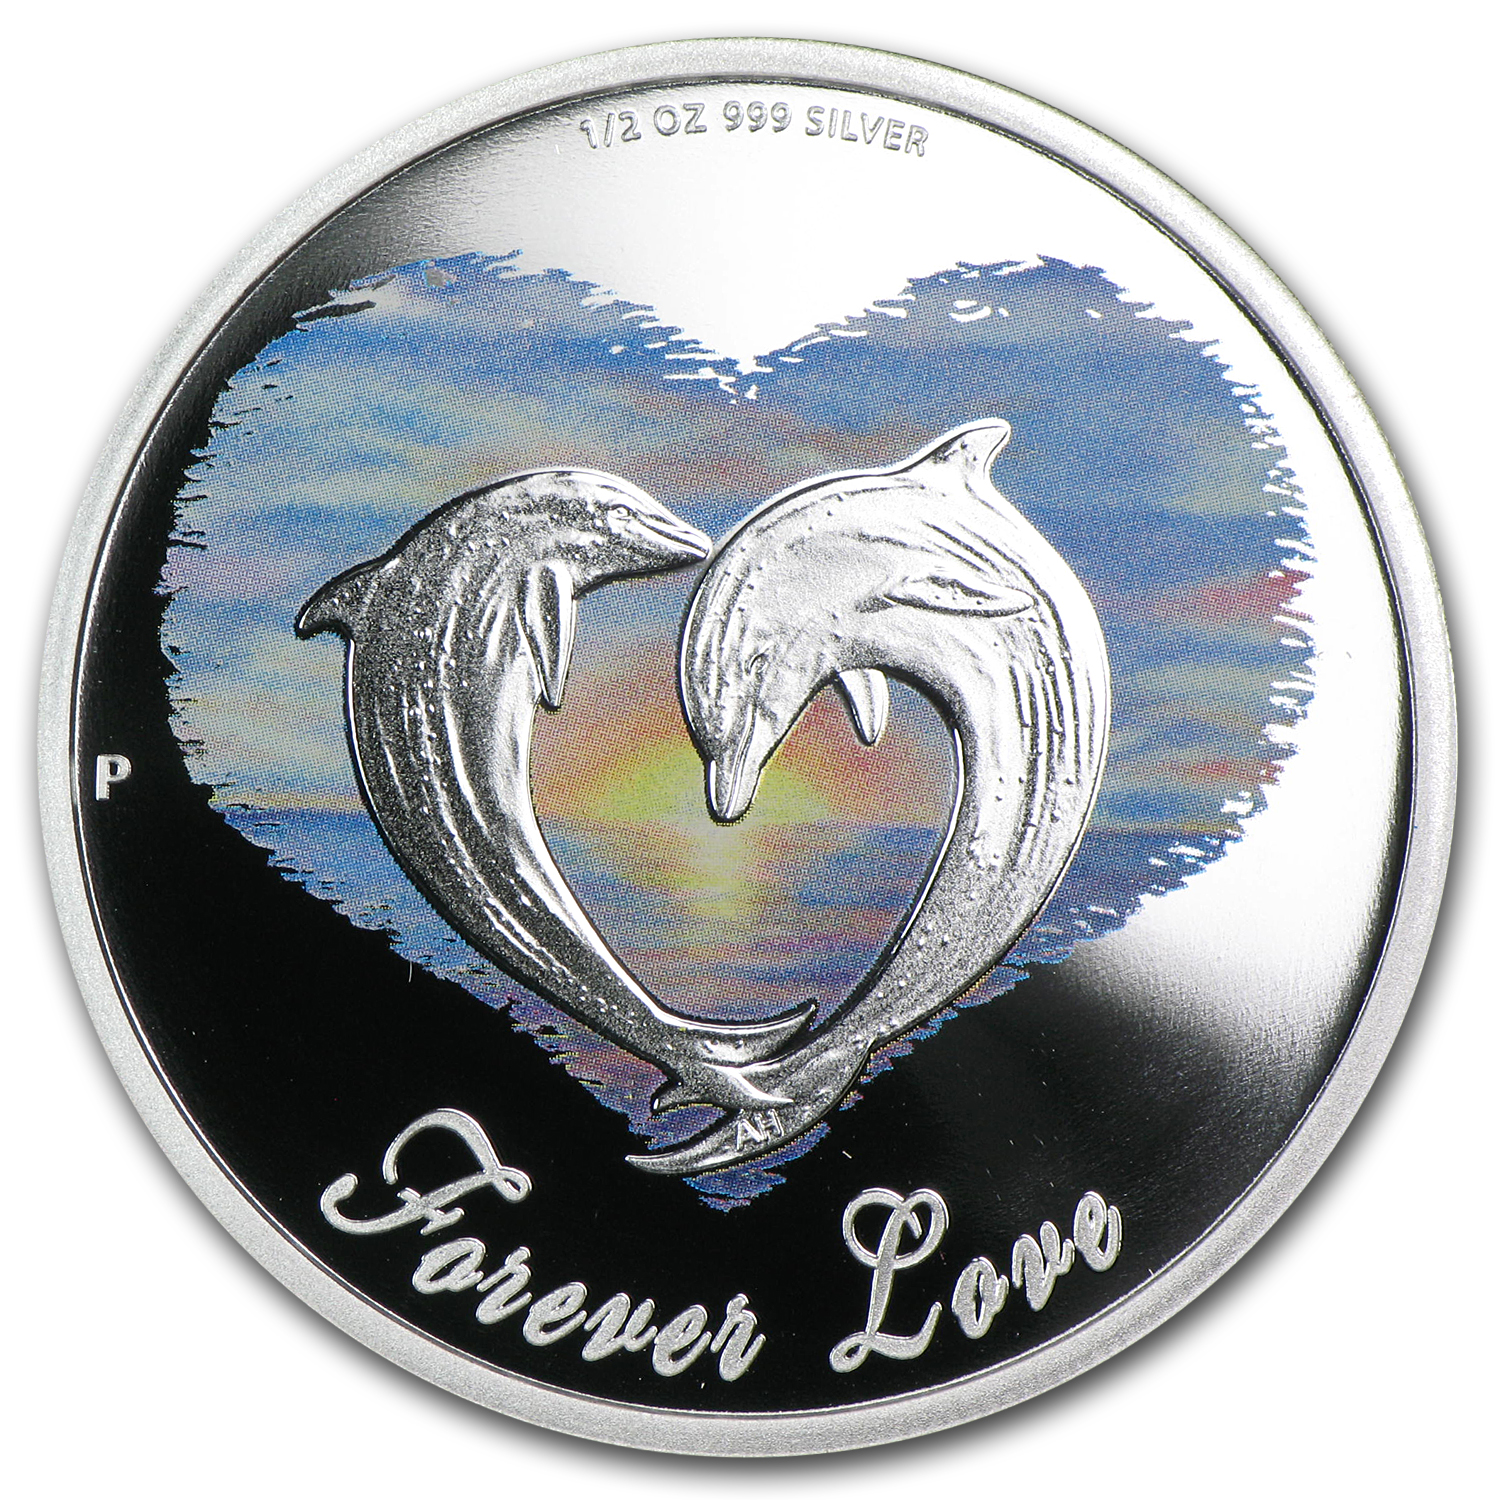 2013 Tuvalu 1/2 oz Silver Forever Love Dolphins Proof